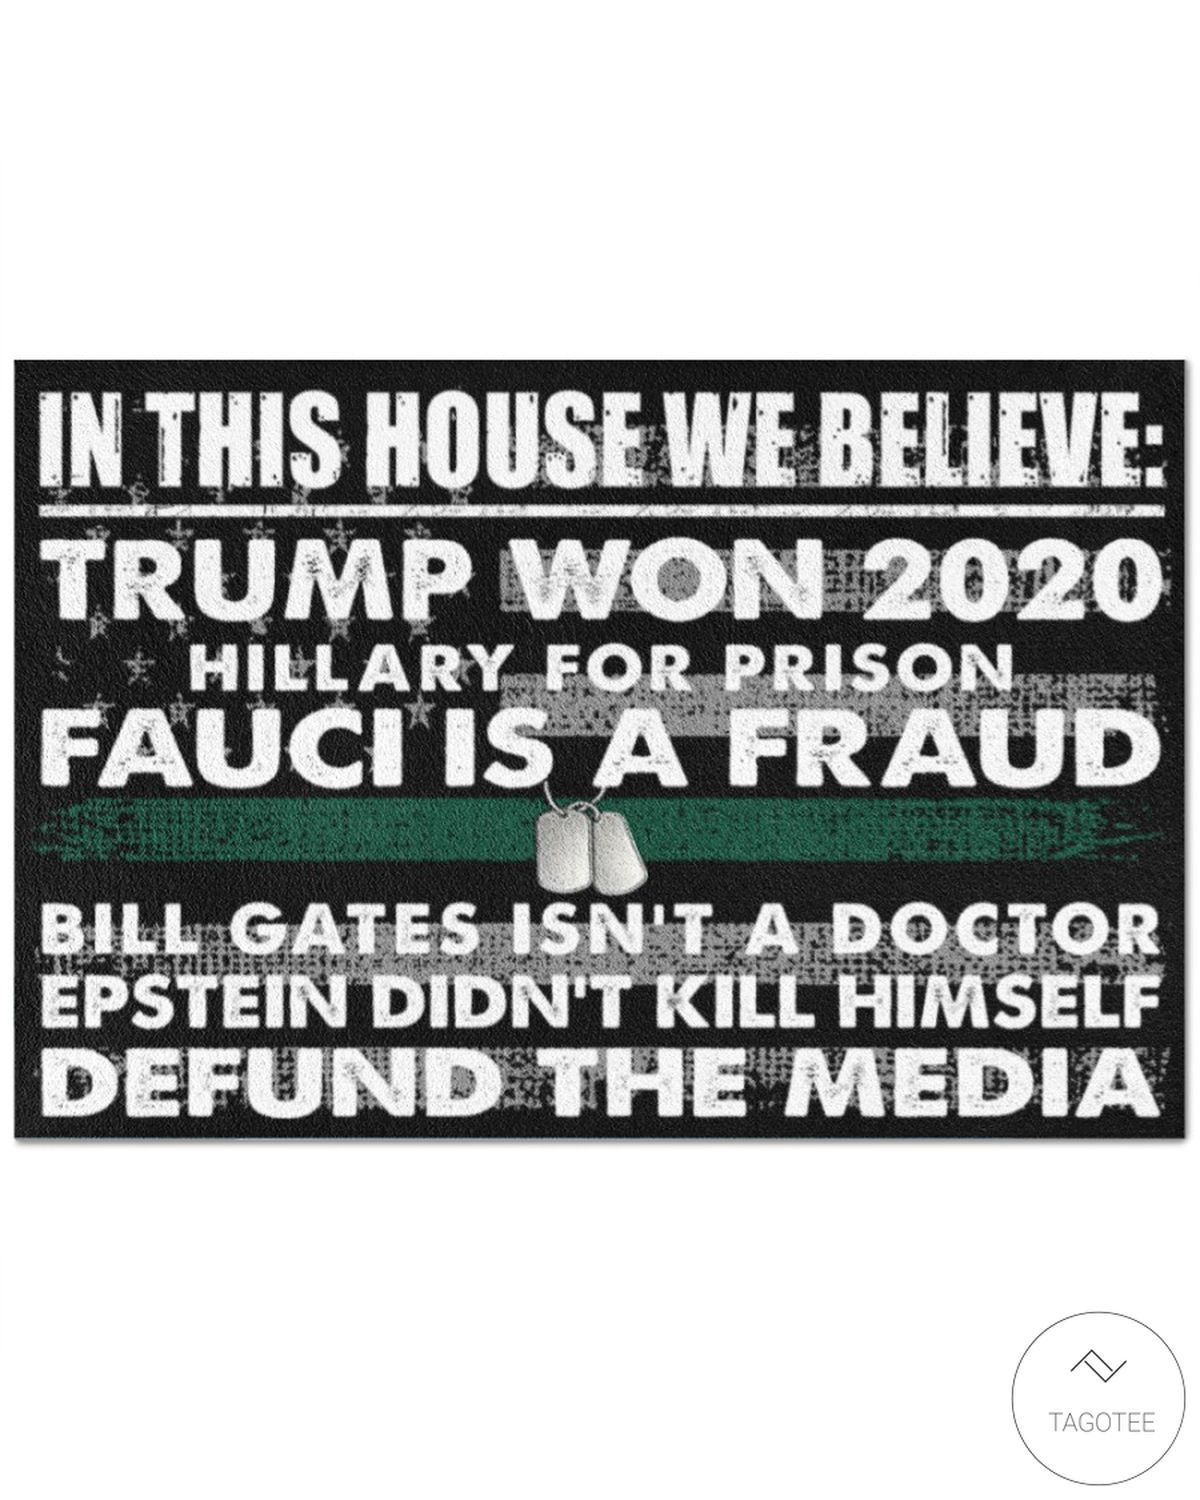 The Thin Green Line In This House We Believe Trump Won 2020 Hillary For Prison Fauci Is A Fraud Doormat